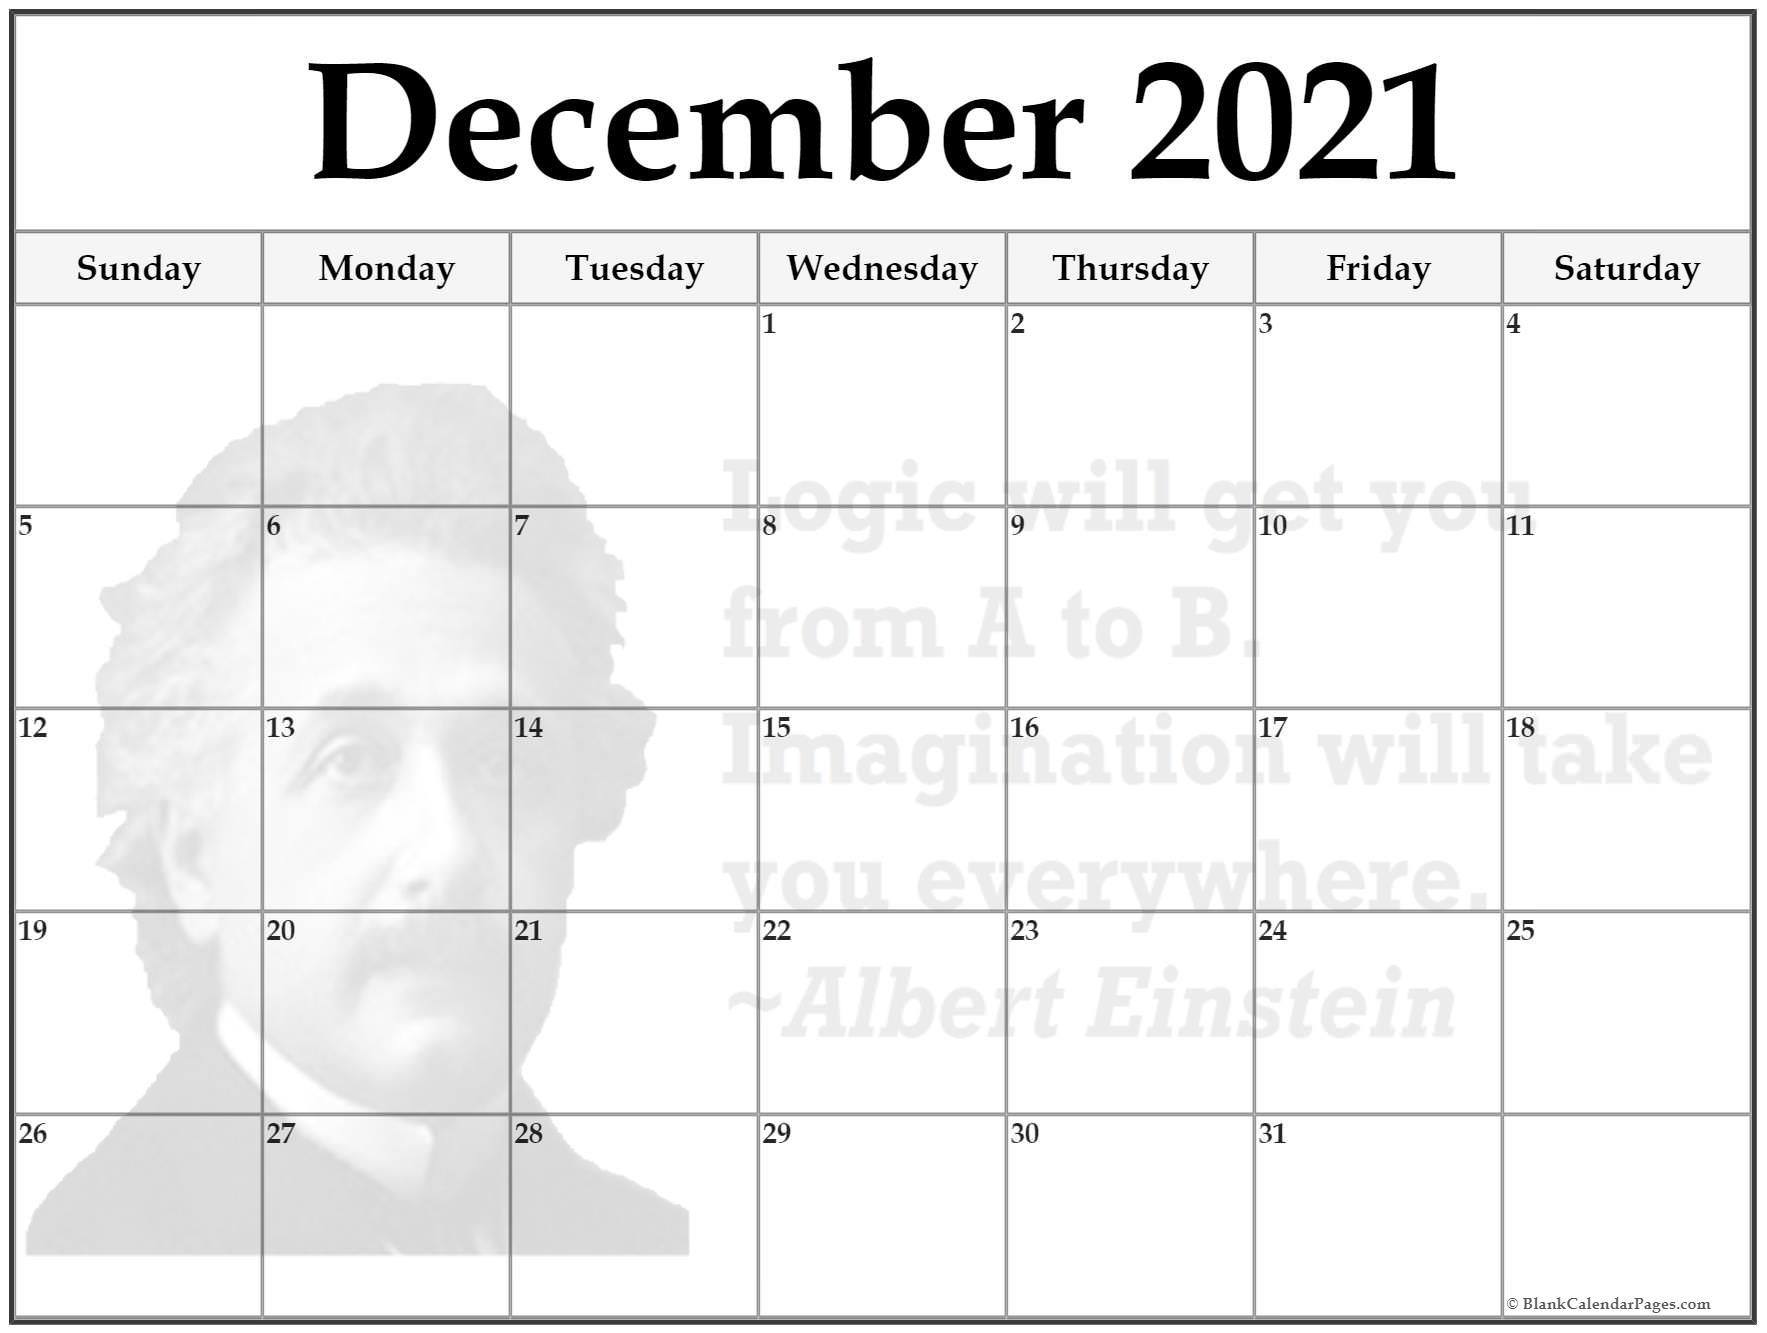 December calendar 2021Logic will get you from A to B. Imagination will take you everywhere ~Albert Einstein